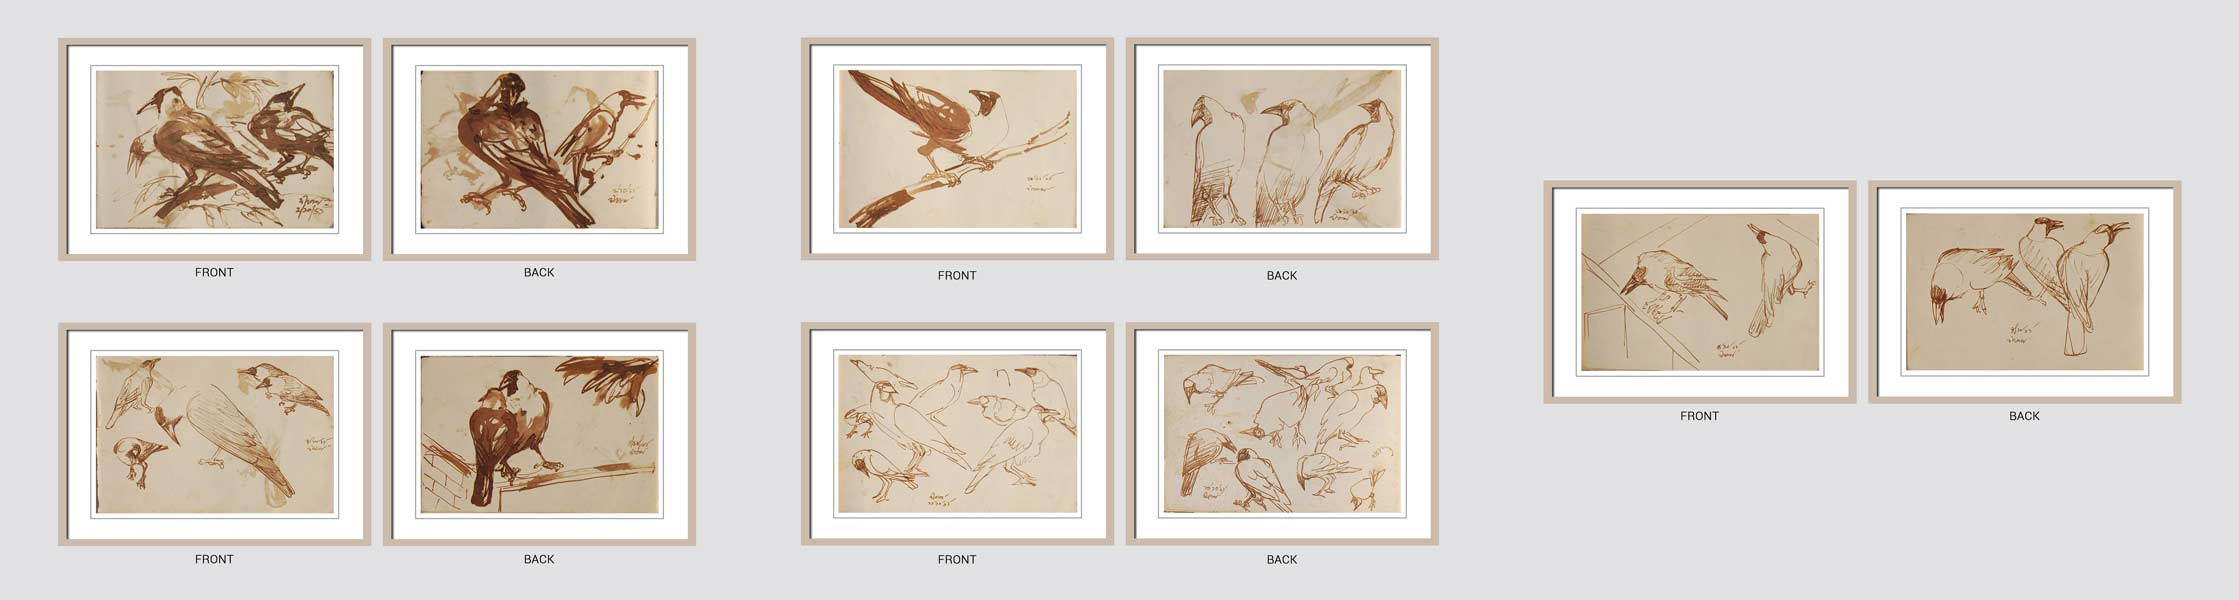 Dipen Bose Crow Series Brush on Paper 5.5×7 inches 1961-64 (Set of 5)